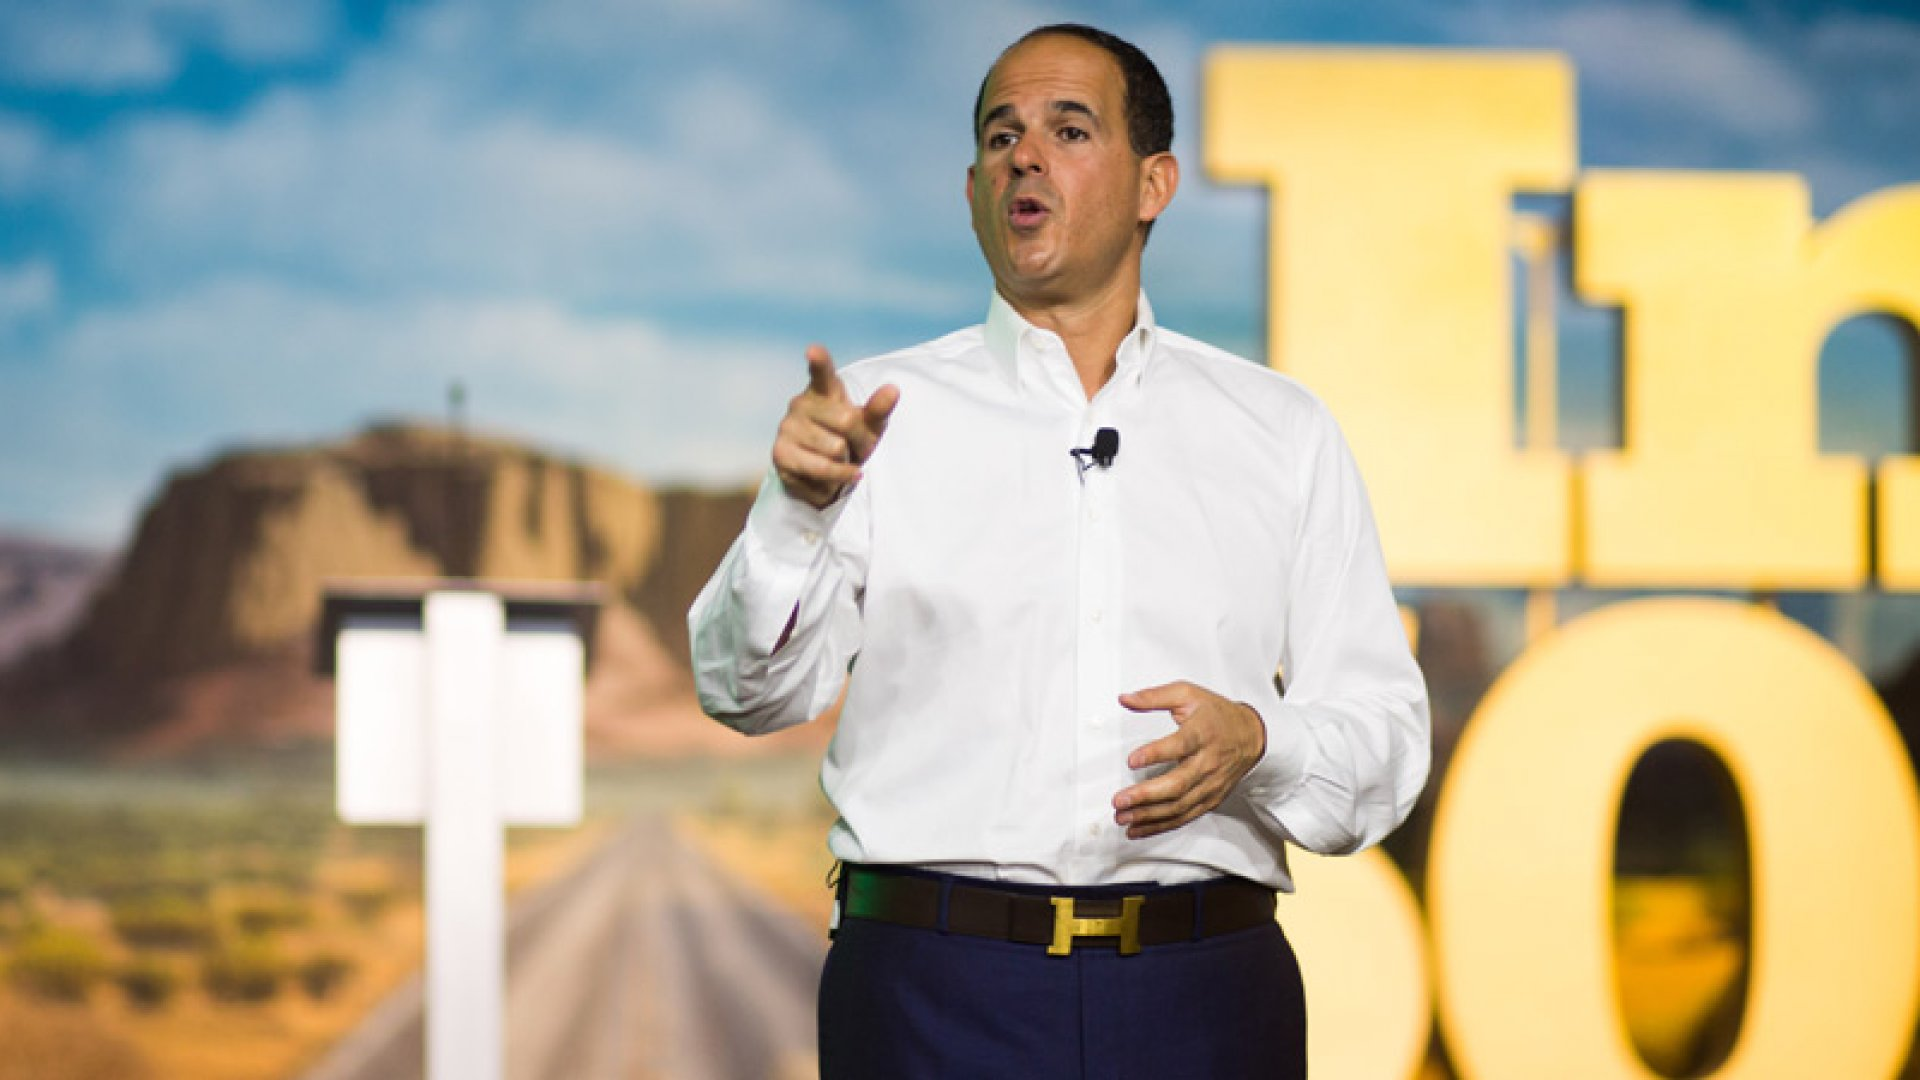 Why Marcus Lemonis Requires His Employees to Volunteer and You Should Too